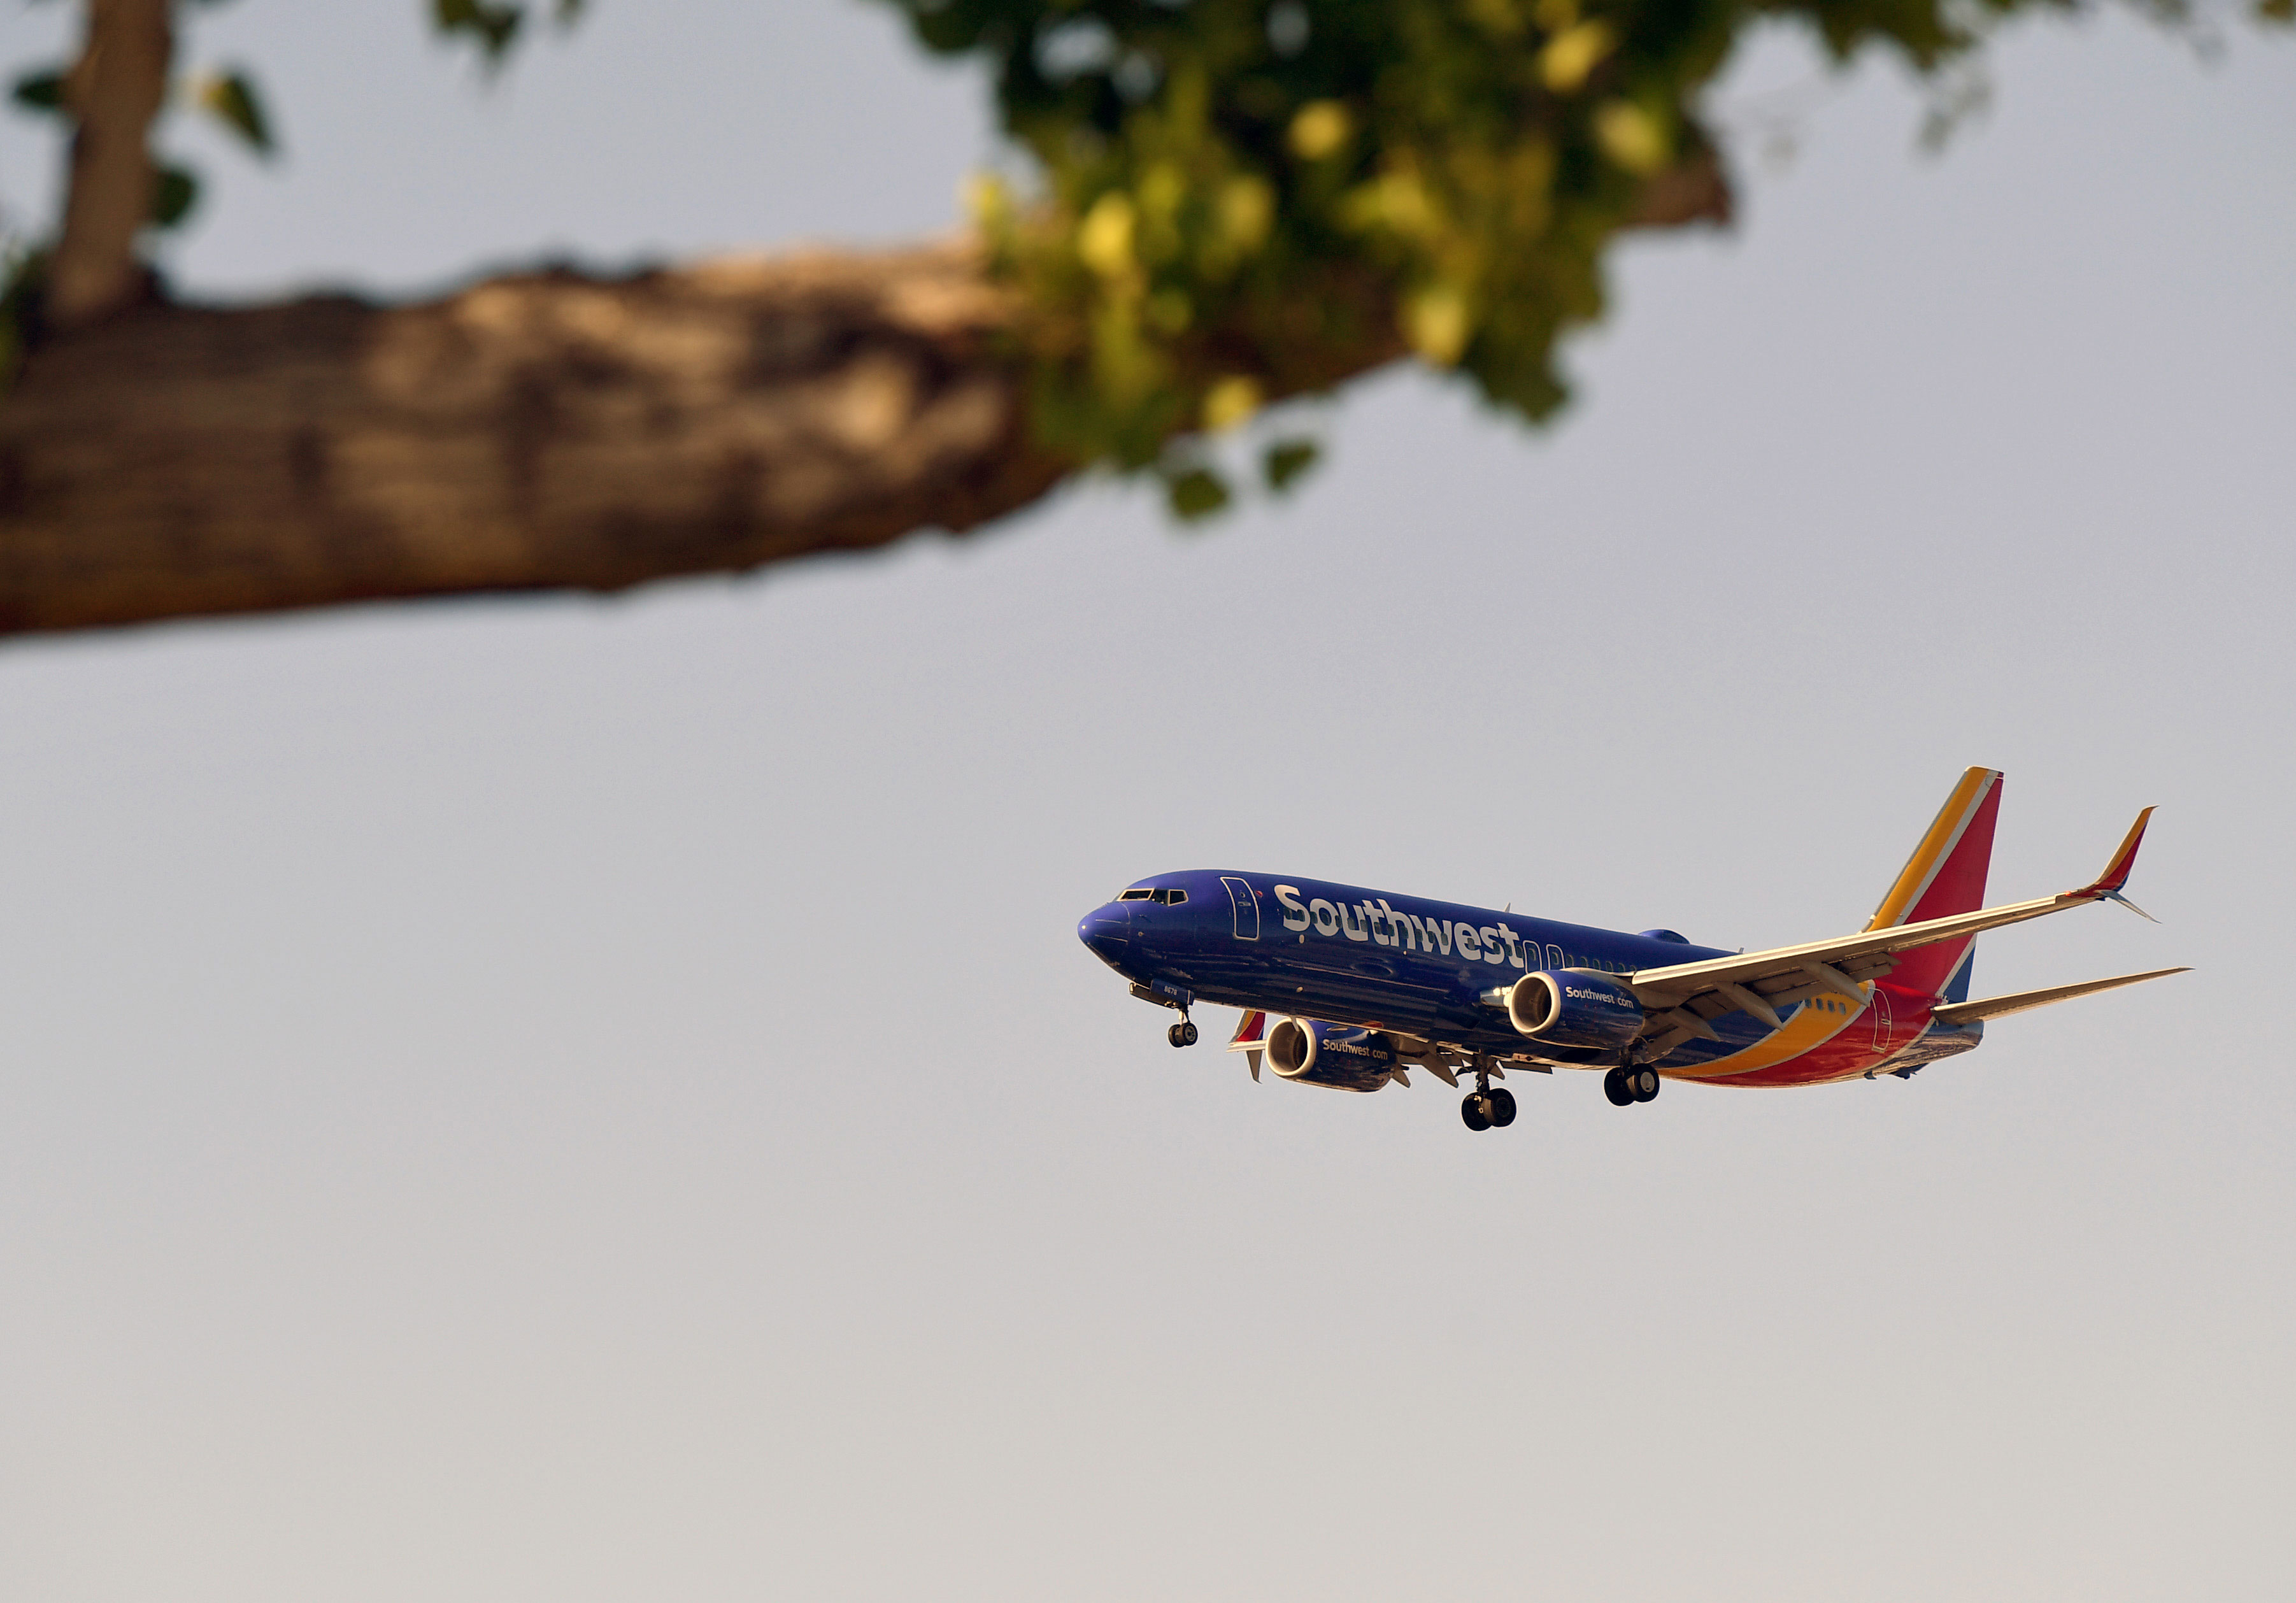 A Southwest Airlines plane prepares to land at McCarran International Airport in Nevada on May 25.